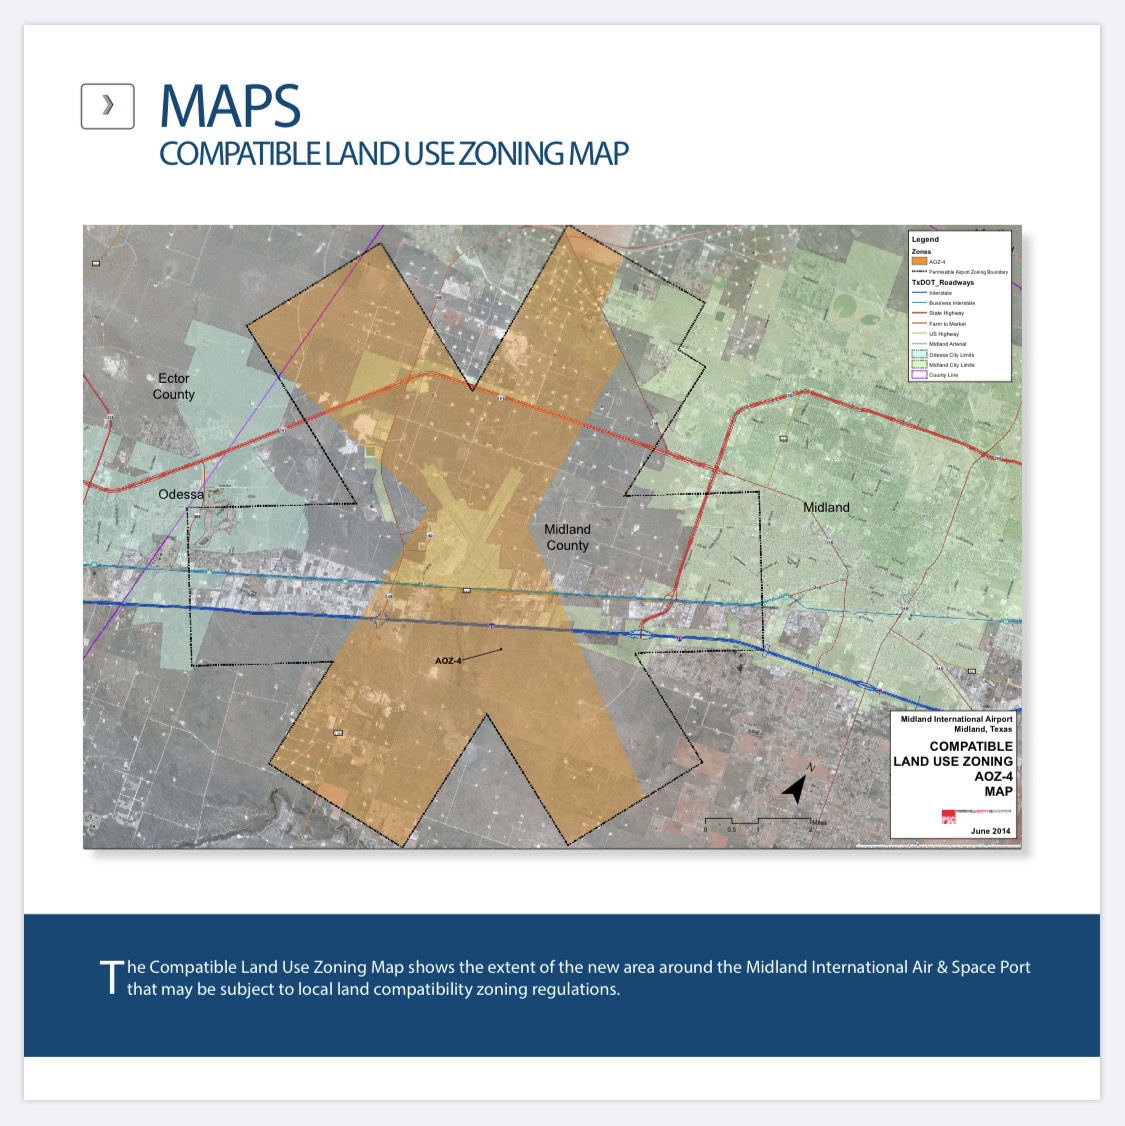 land use zoning map